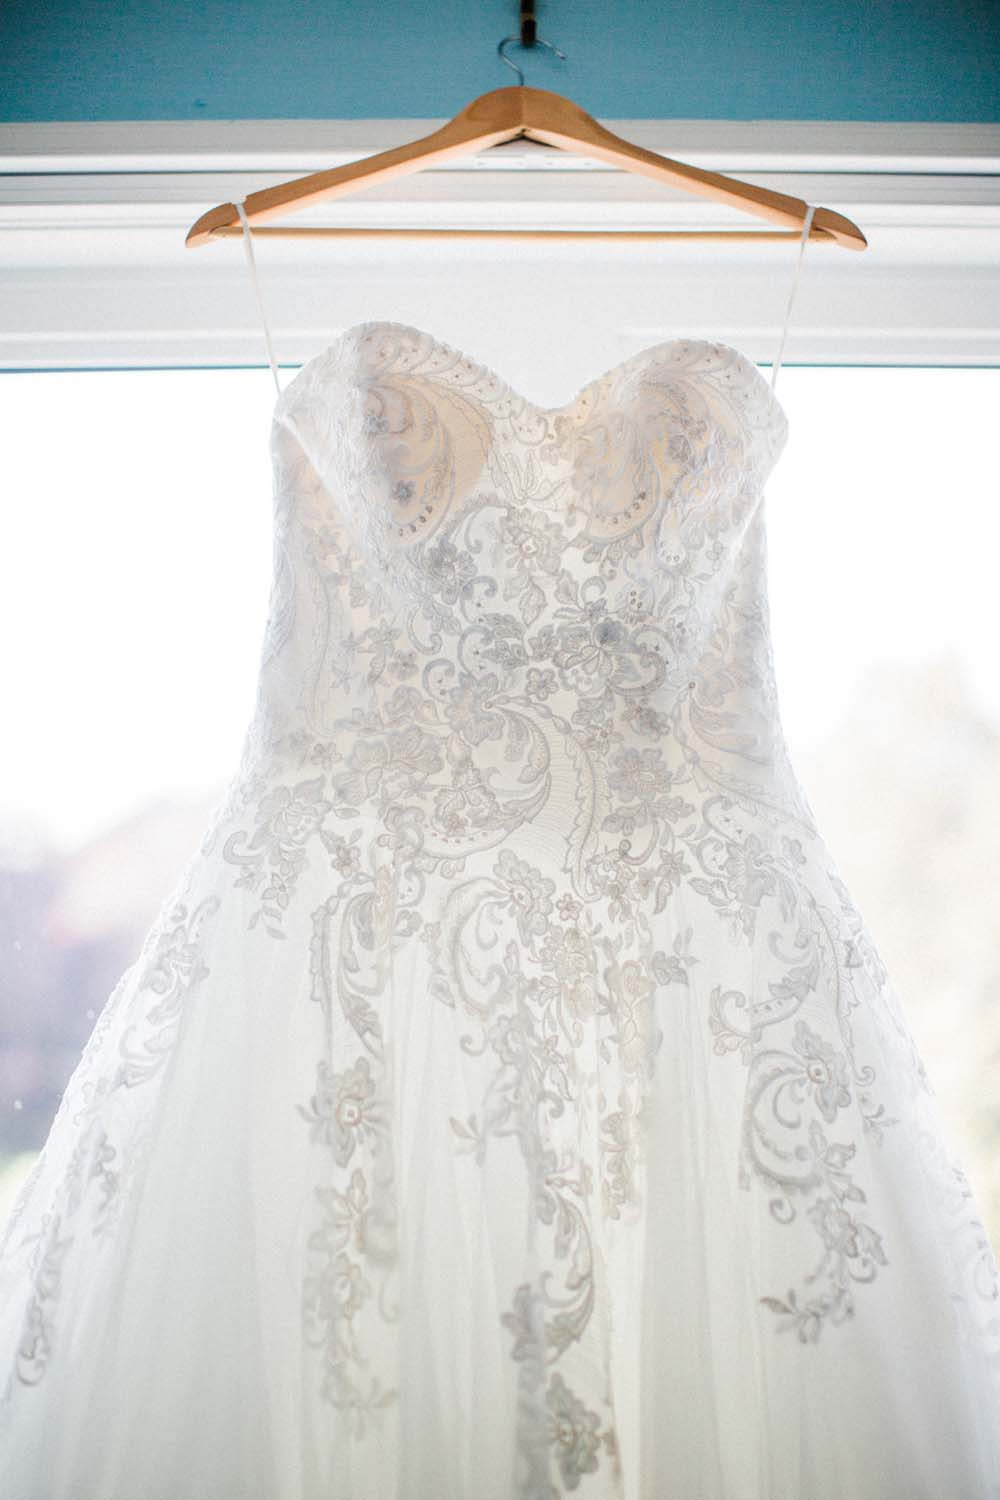 A Rustic, Whimsical Wedding in Tottenham - Gown details